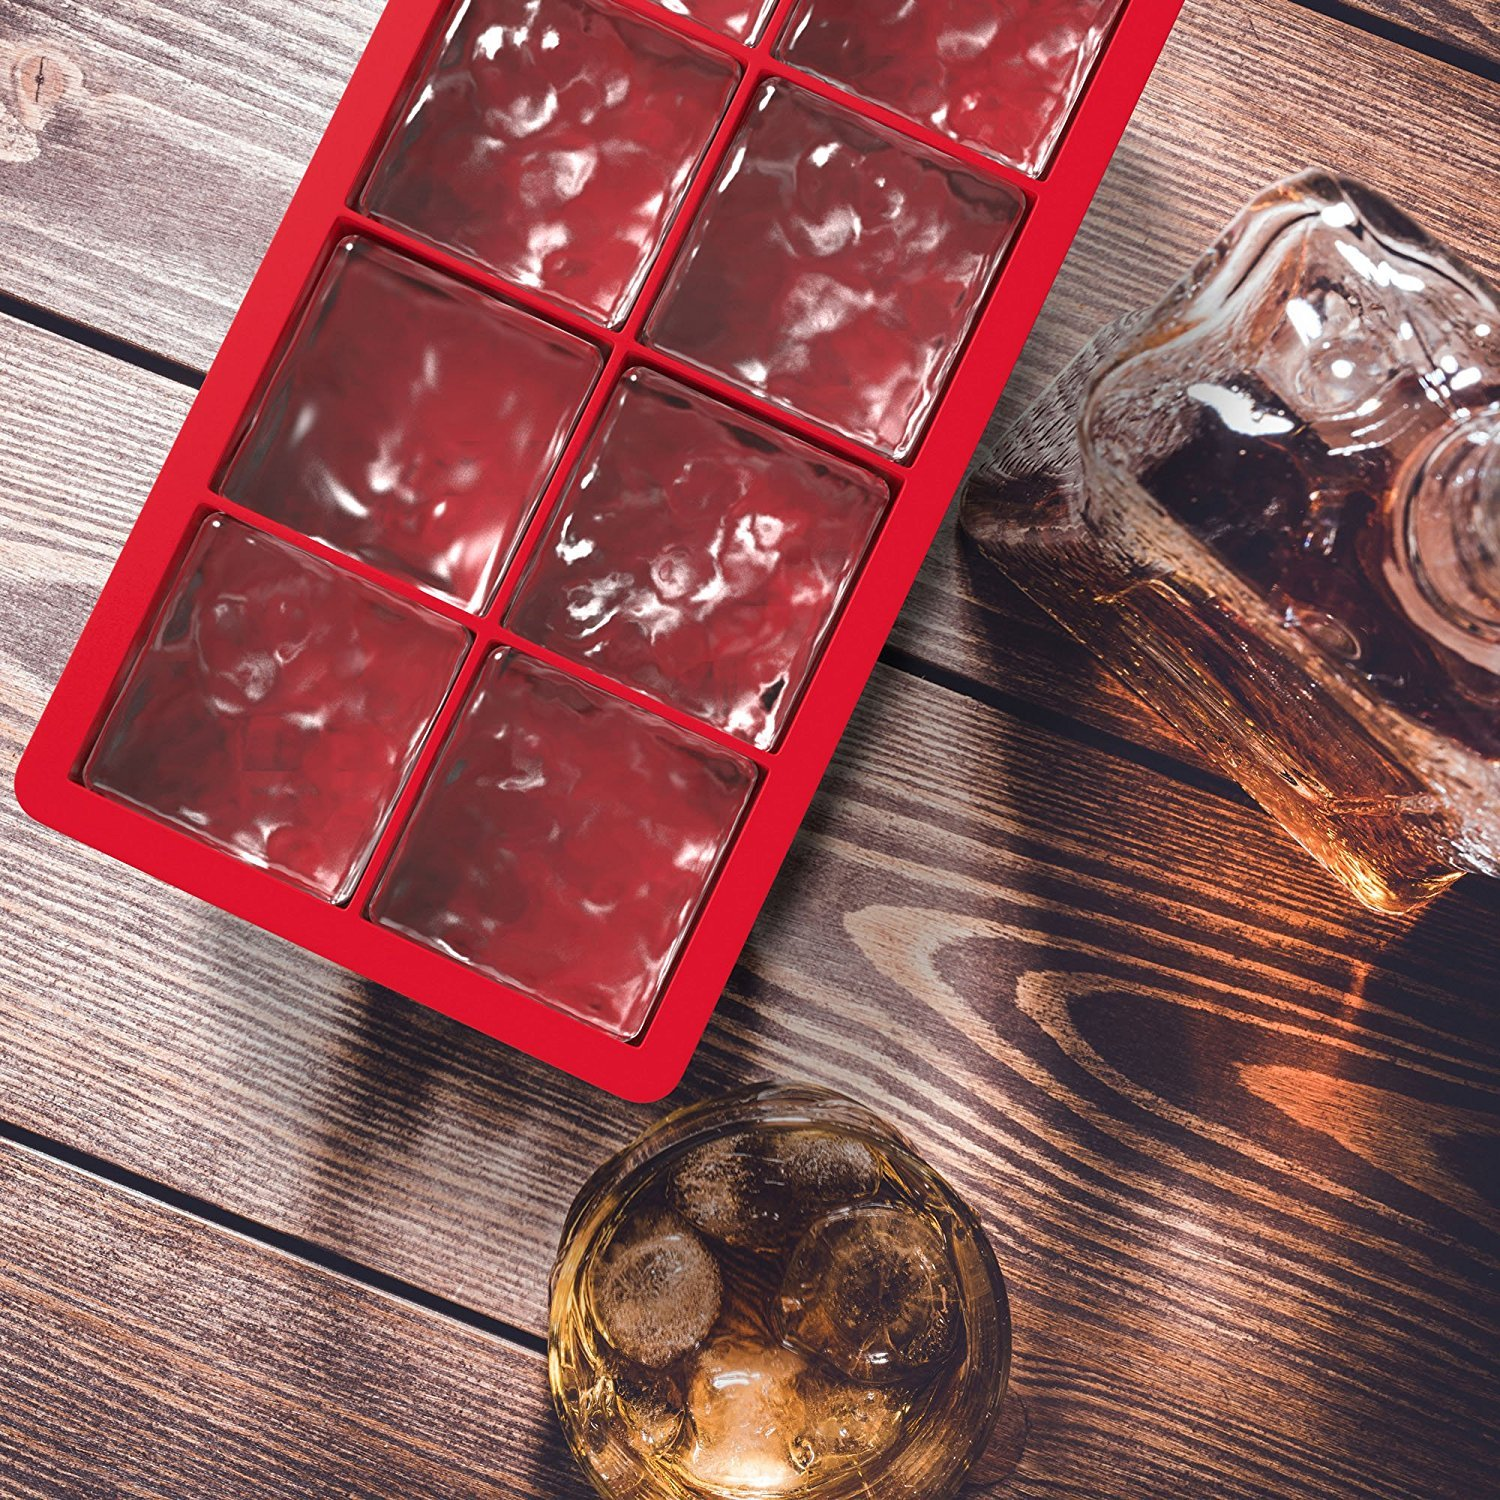 Ice Cubes 1-cup Tray With Lid